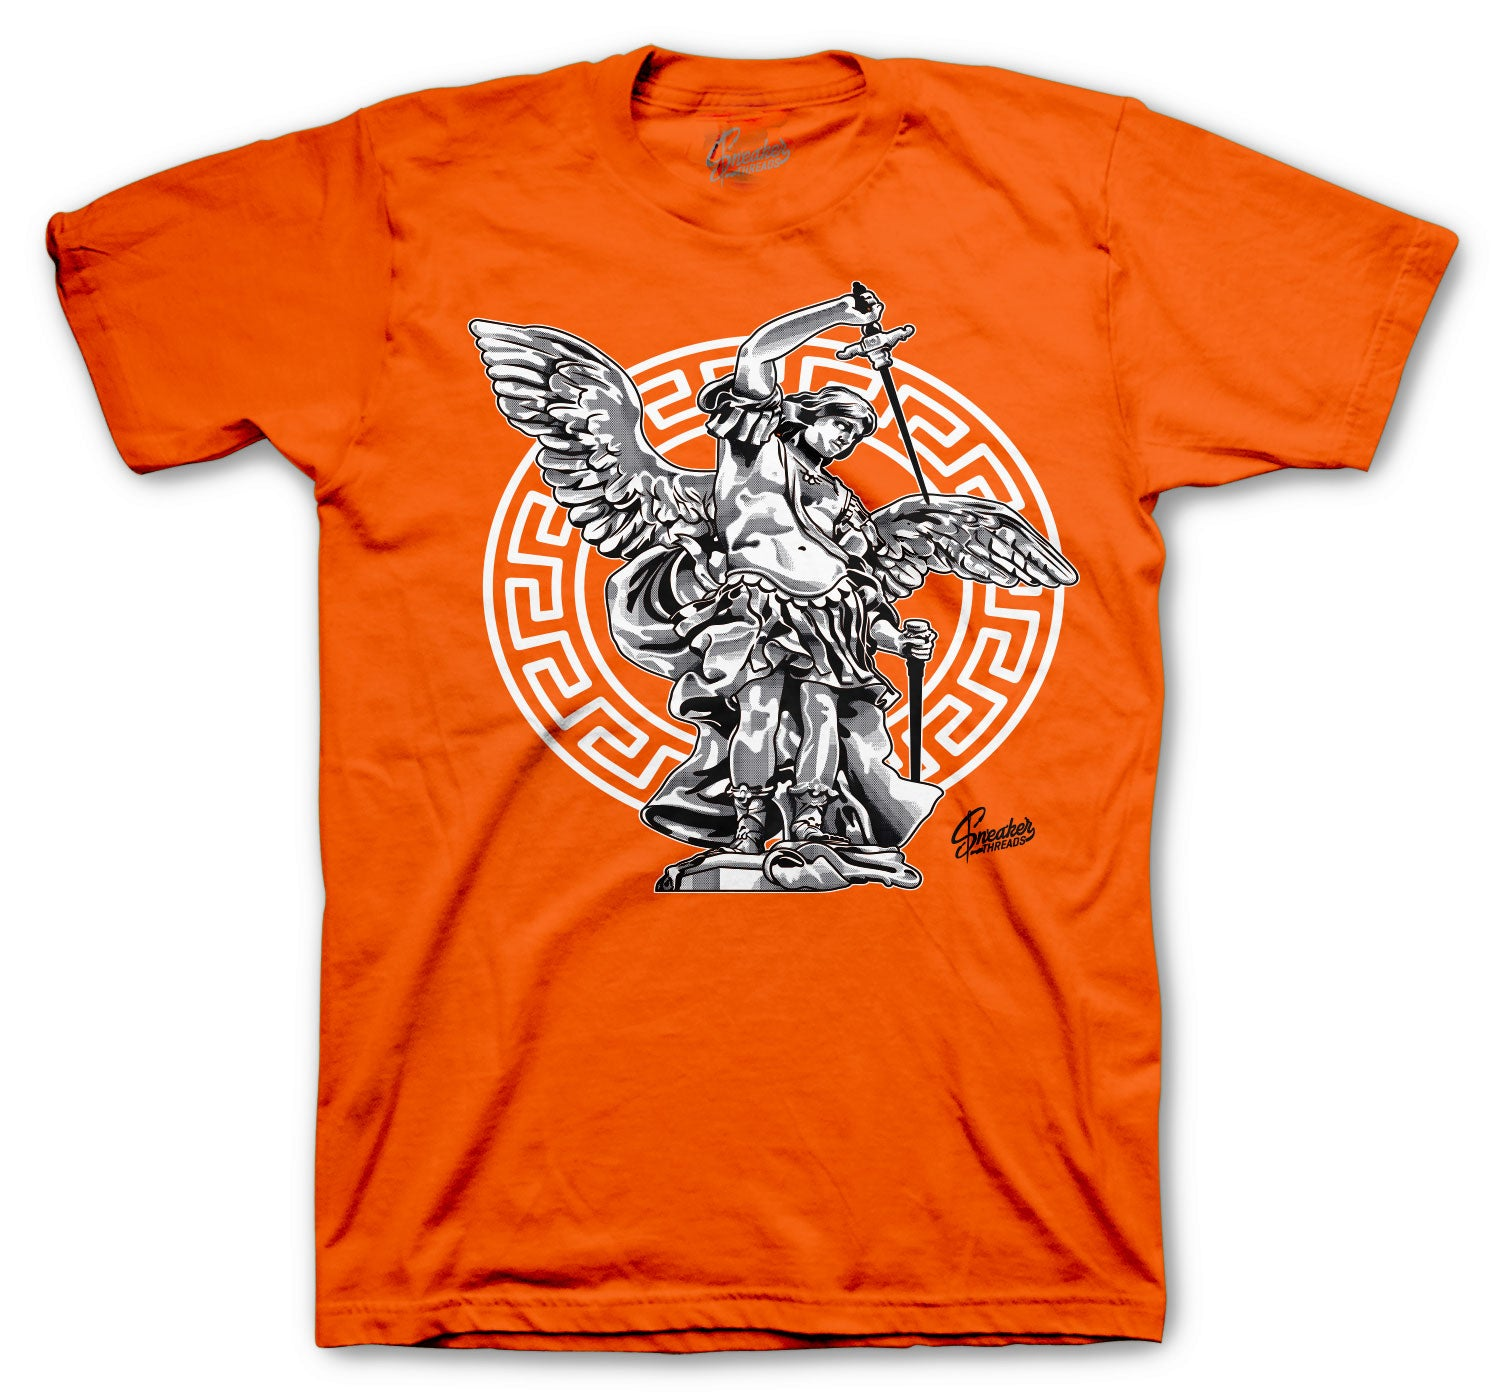 Foamposite Pro Halloween Shirt - St. Michael - Orange